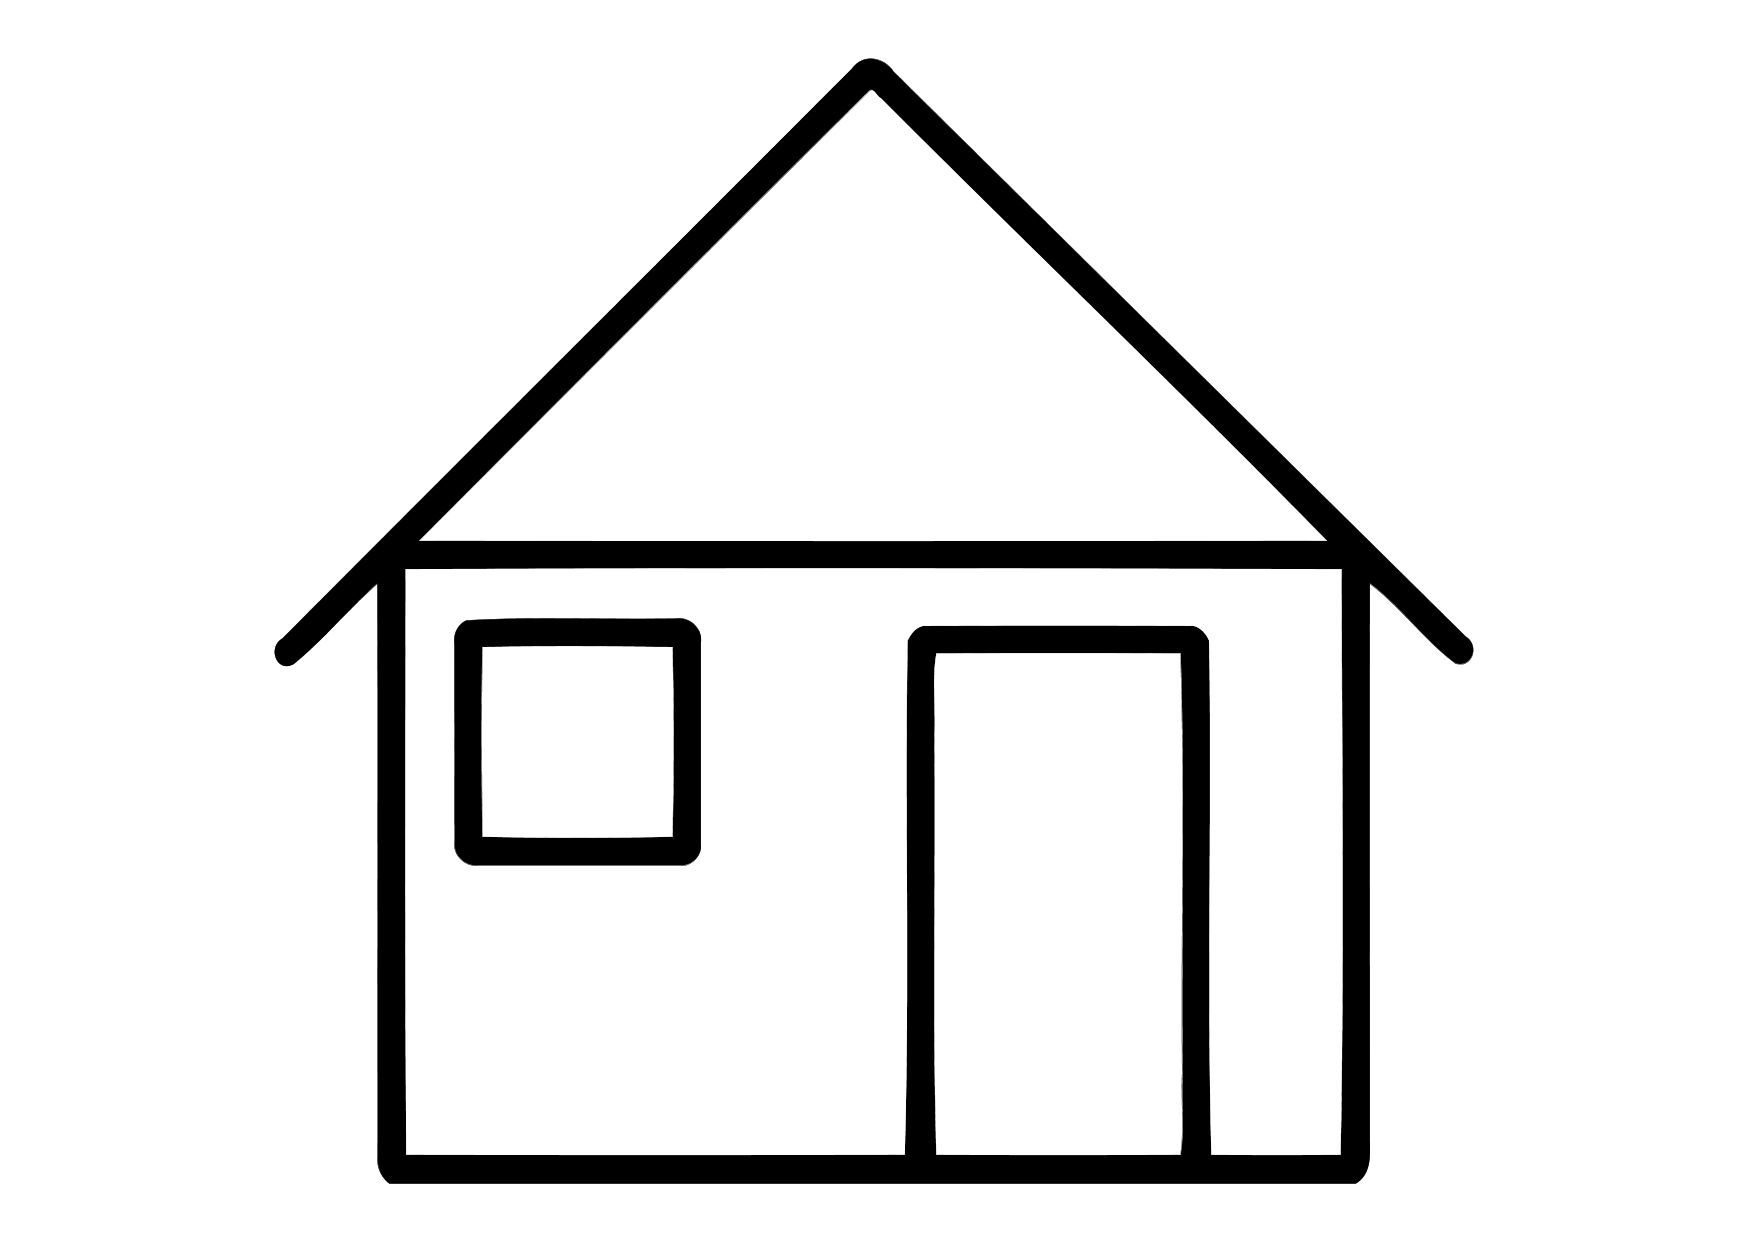 coloring sheets house cute cozy house coloring page free clip art sheets coloring house